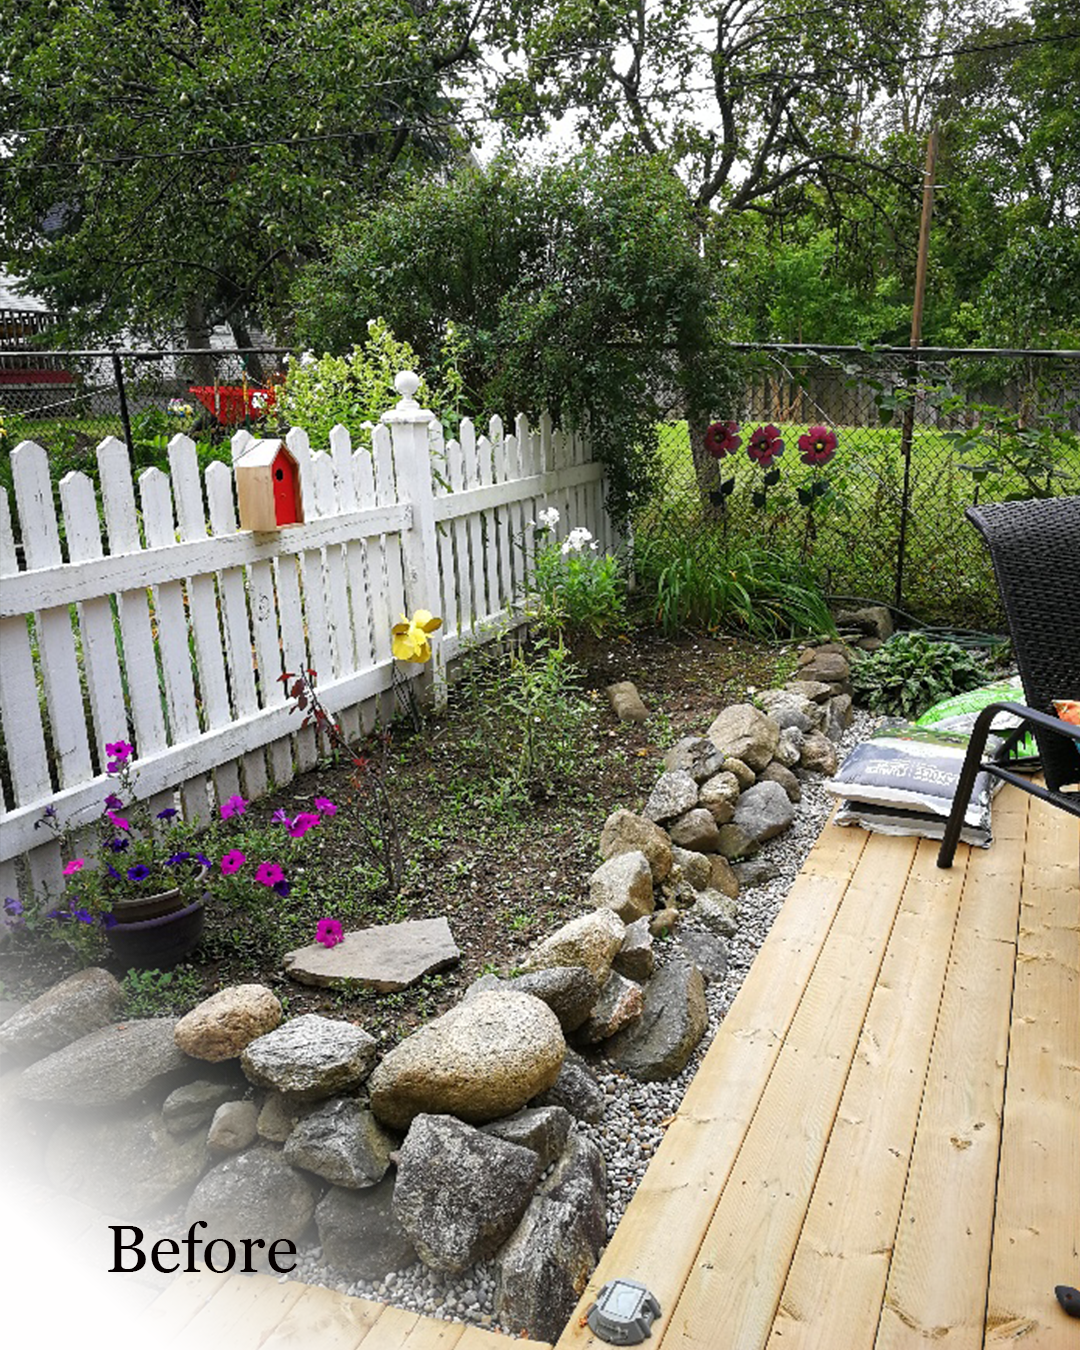 Revive, Refresh & Plant - We will prepare the soil, split and transplant perennials. We can also plant annuals, perennials, small shrubs and herb & vegetable gardens.